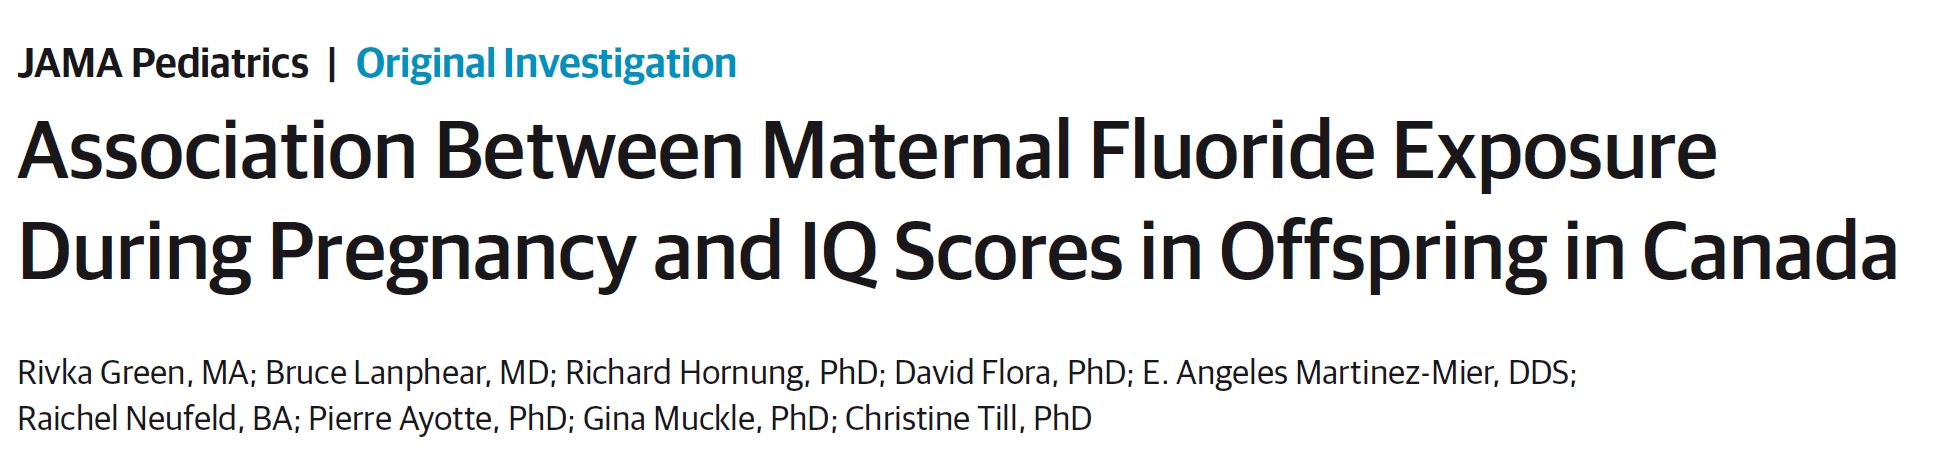 Association Between Maternal Fluoride Exposure During Pregnancy and IQ Scores in Offspring in Canada